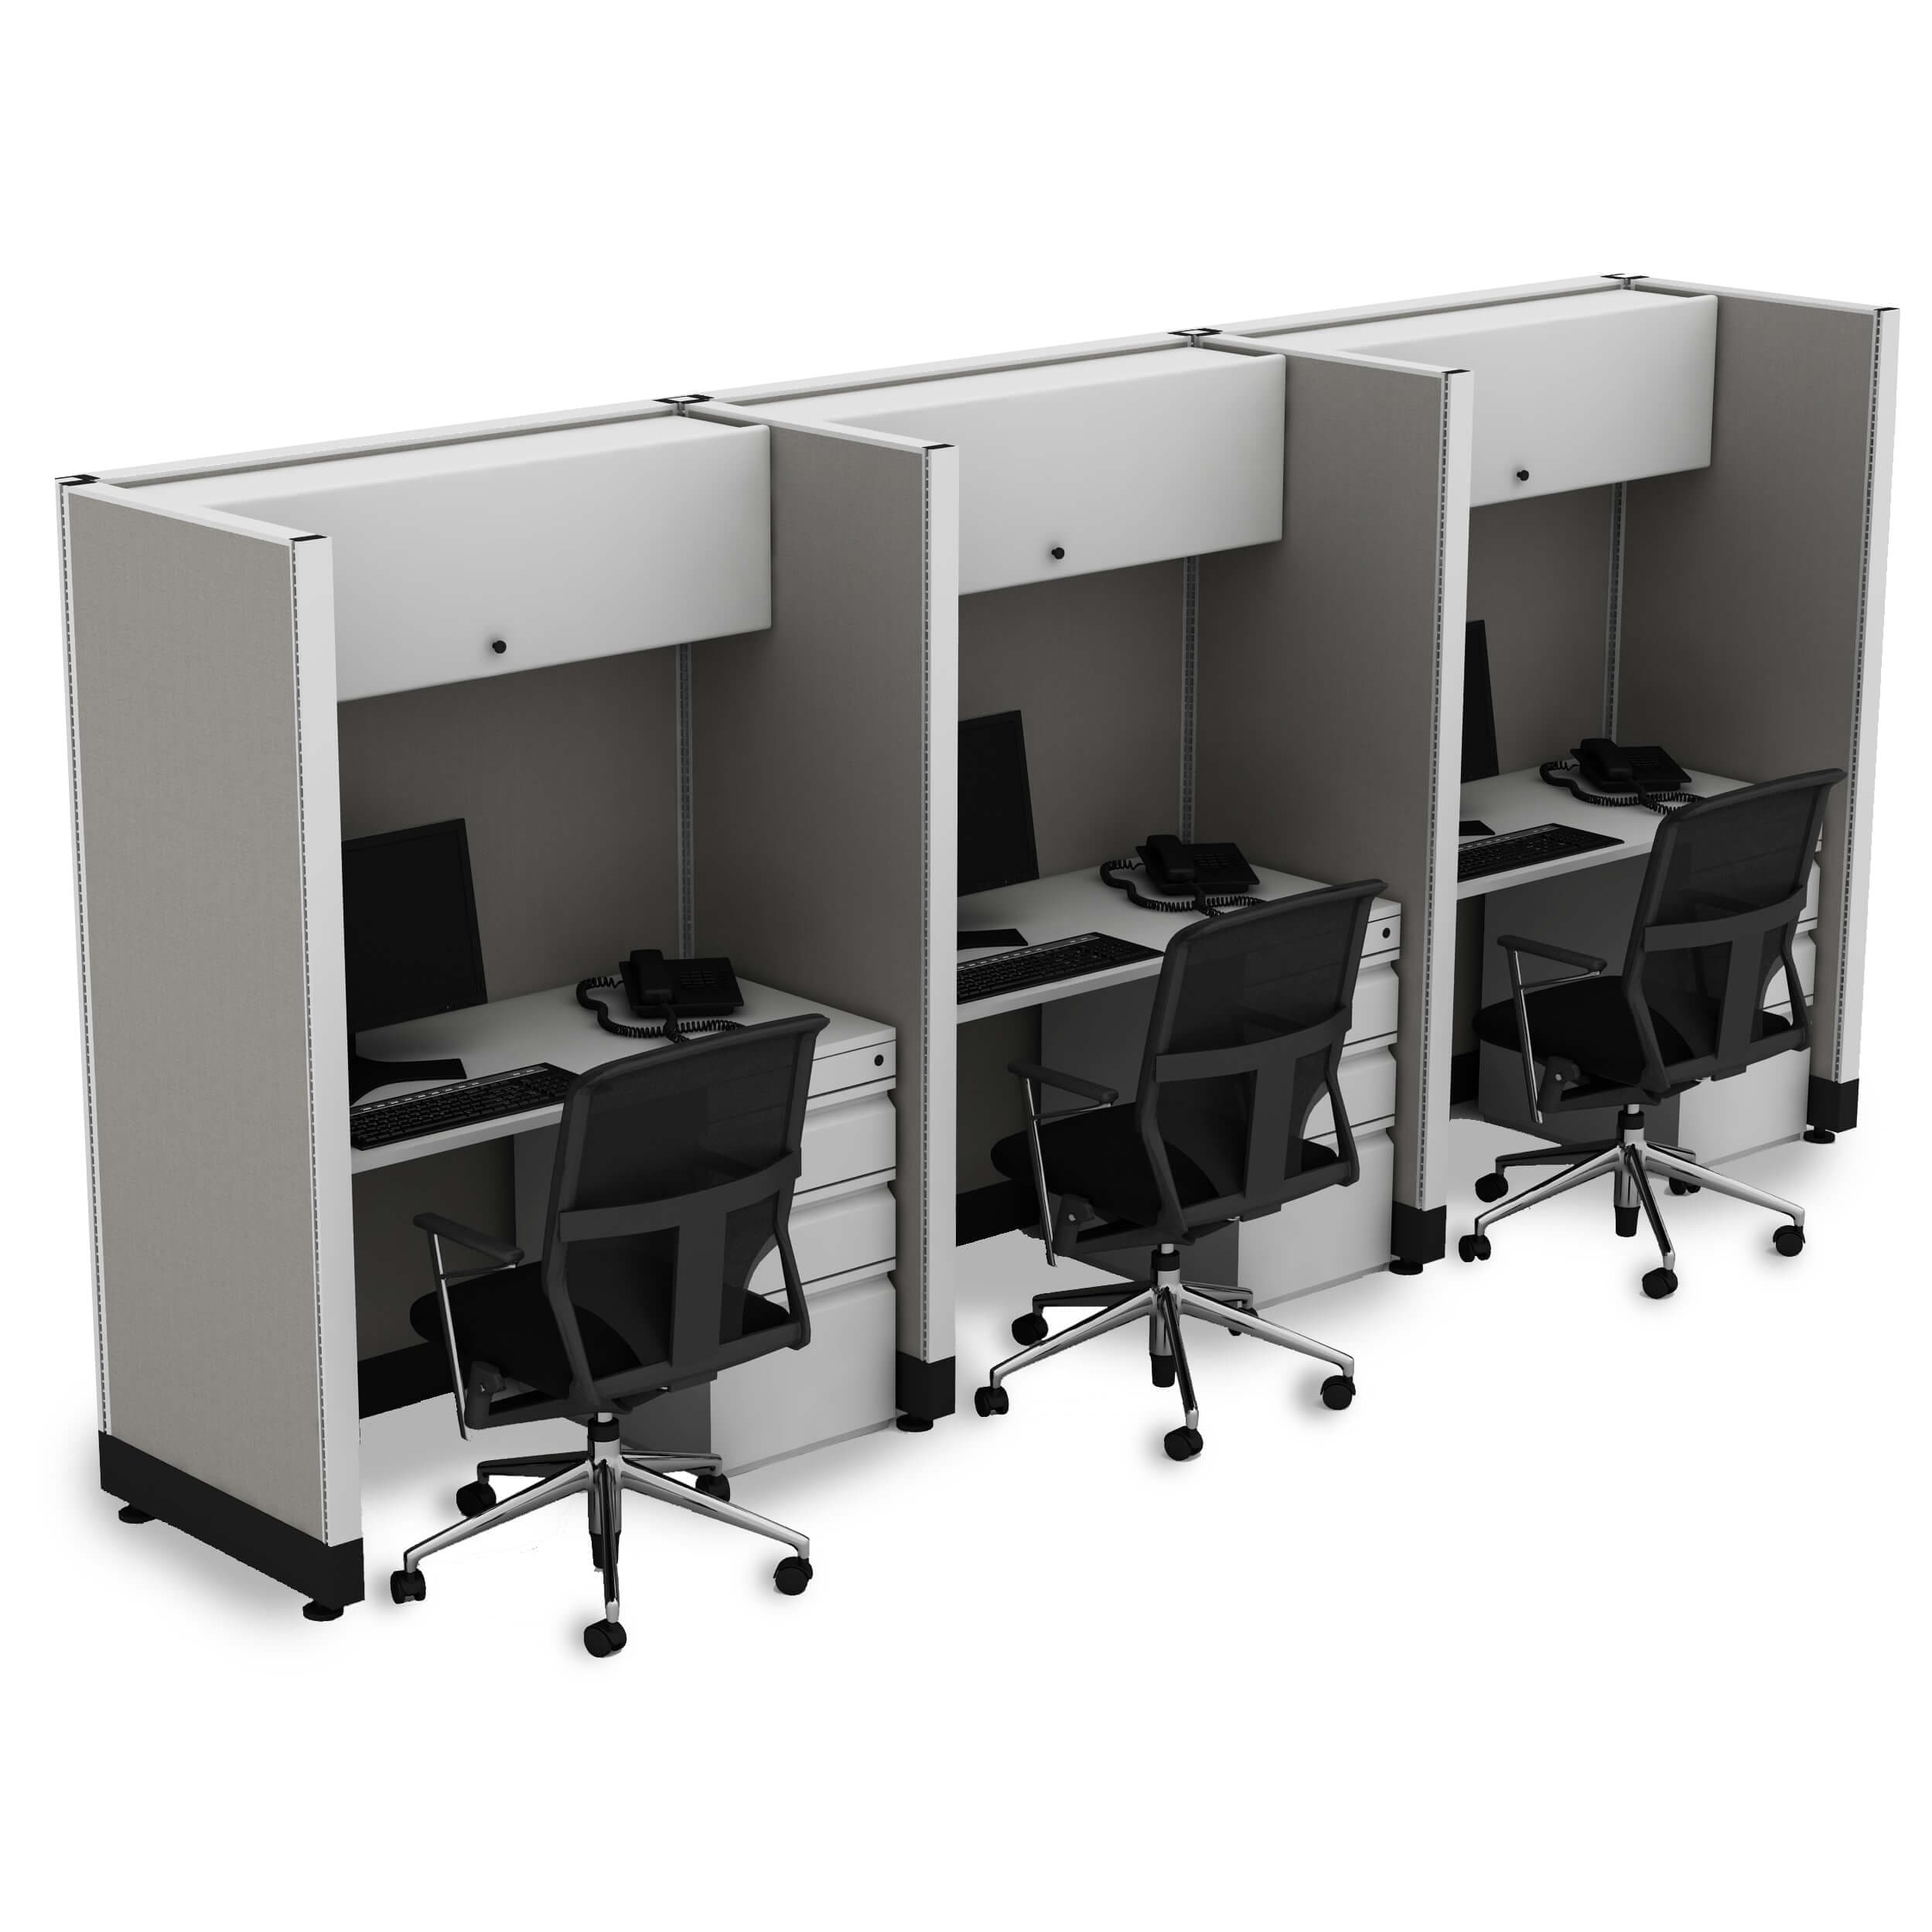 Tall Cubicles 67H 3pack Inline Unpowered (4x4 - Espresso Desk Silver Paint - Assembly Required)